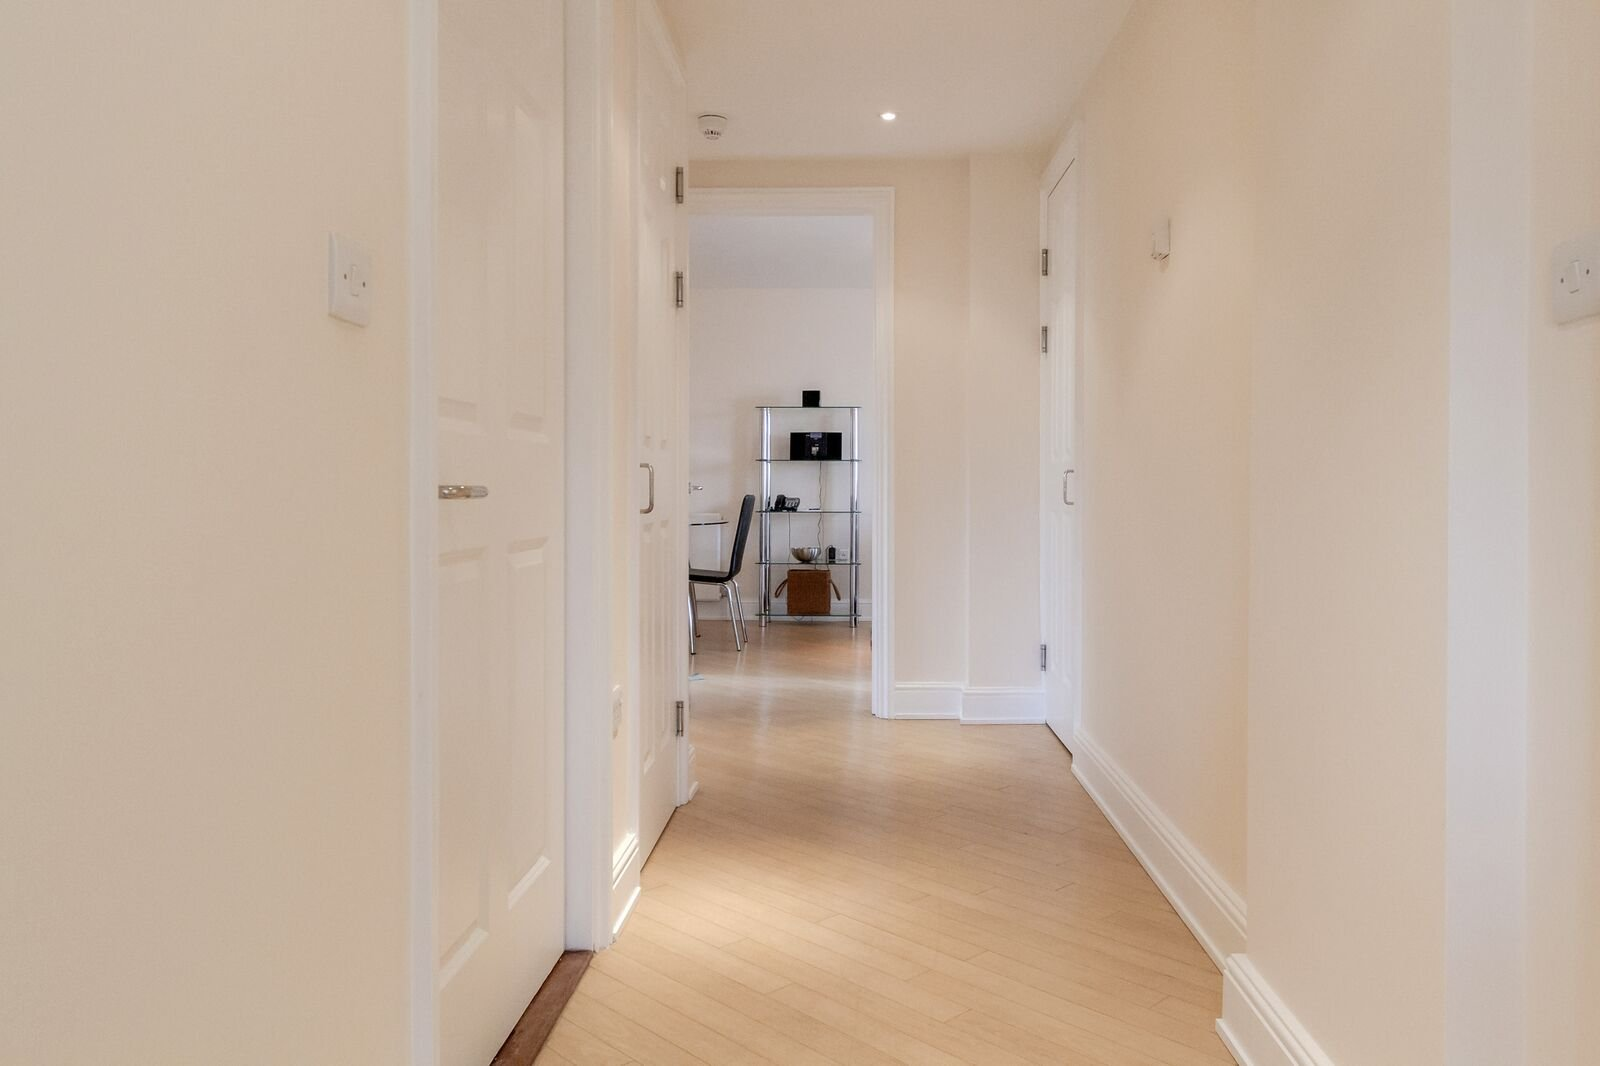 Modern-Wimbledon-Serviced-Apartments---The-Courtyard---Book-Now-With-Urban-Stay-For-The-Best-Rates-Guaranteed!!!---Free-Wi-Fi---Weekly-Clean